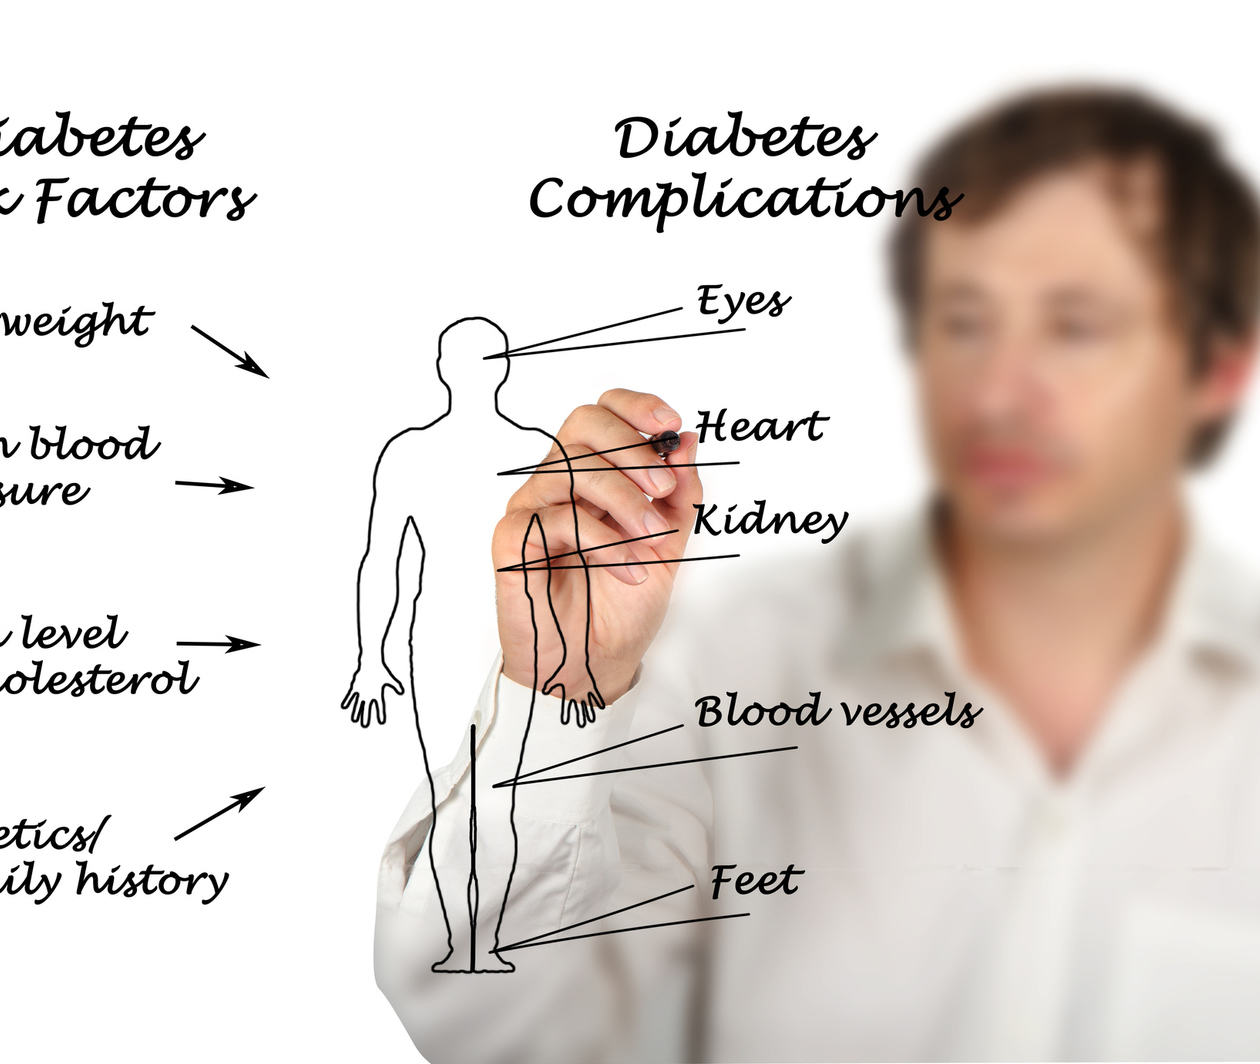 HND701.3 Complications of Type 2 Diabetes